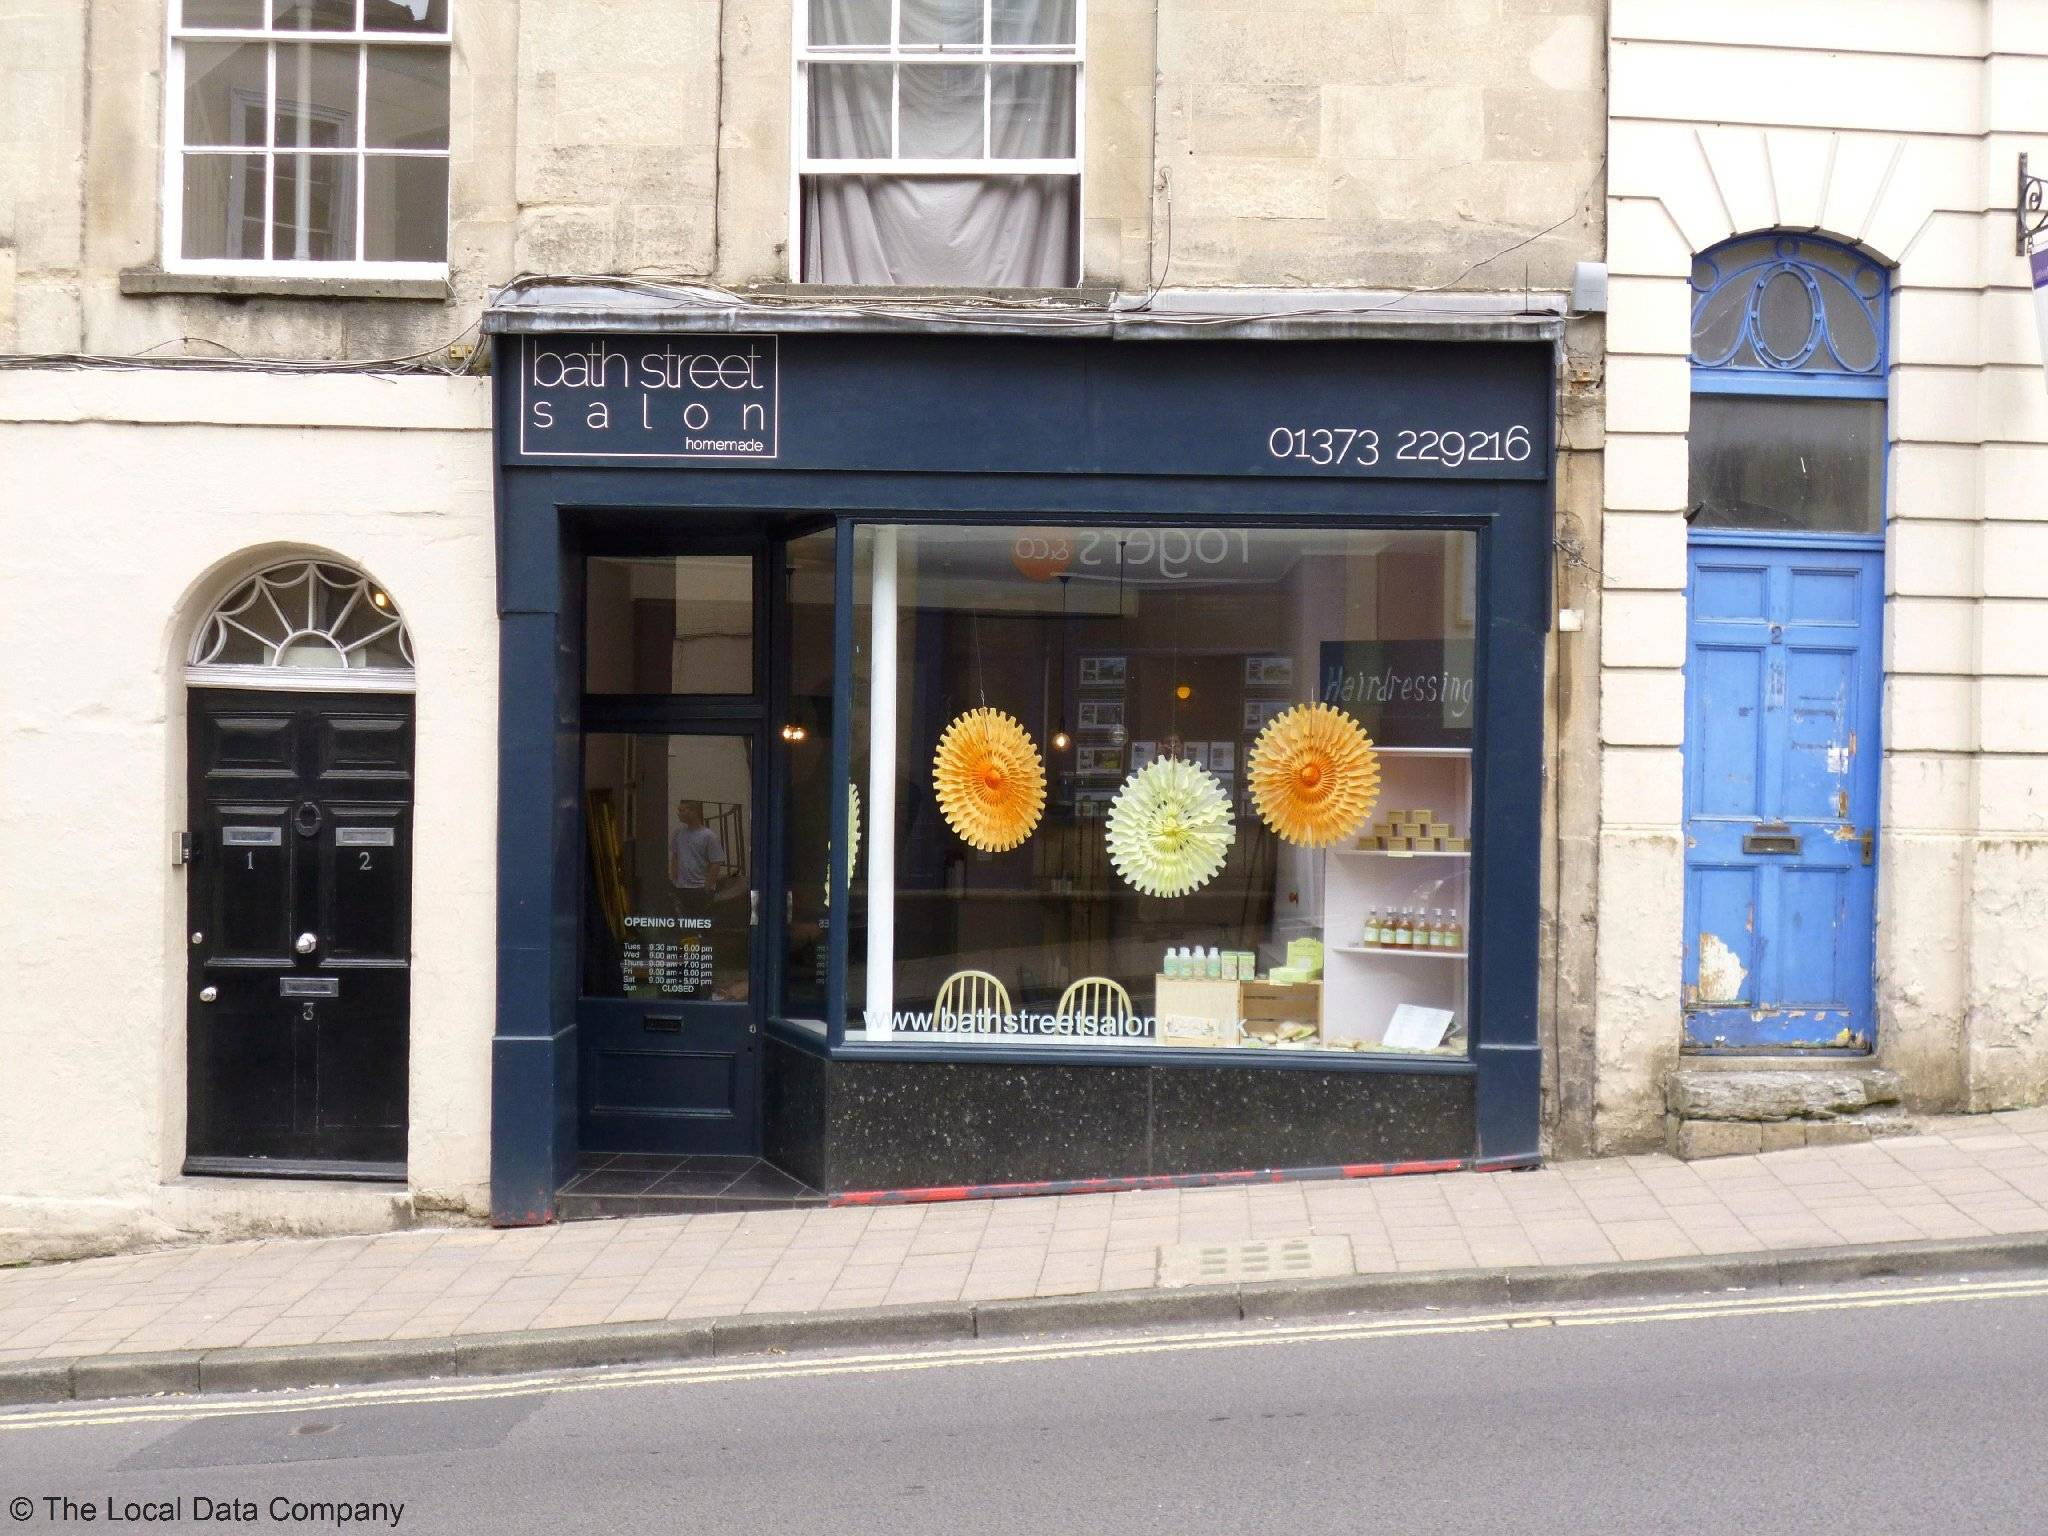 Bath Street Salon